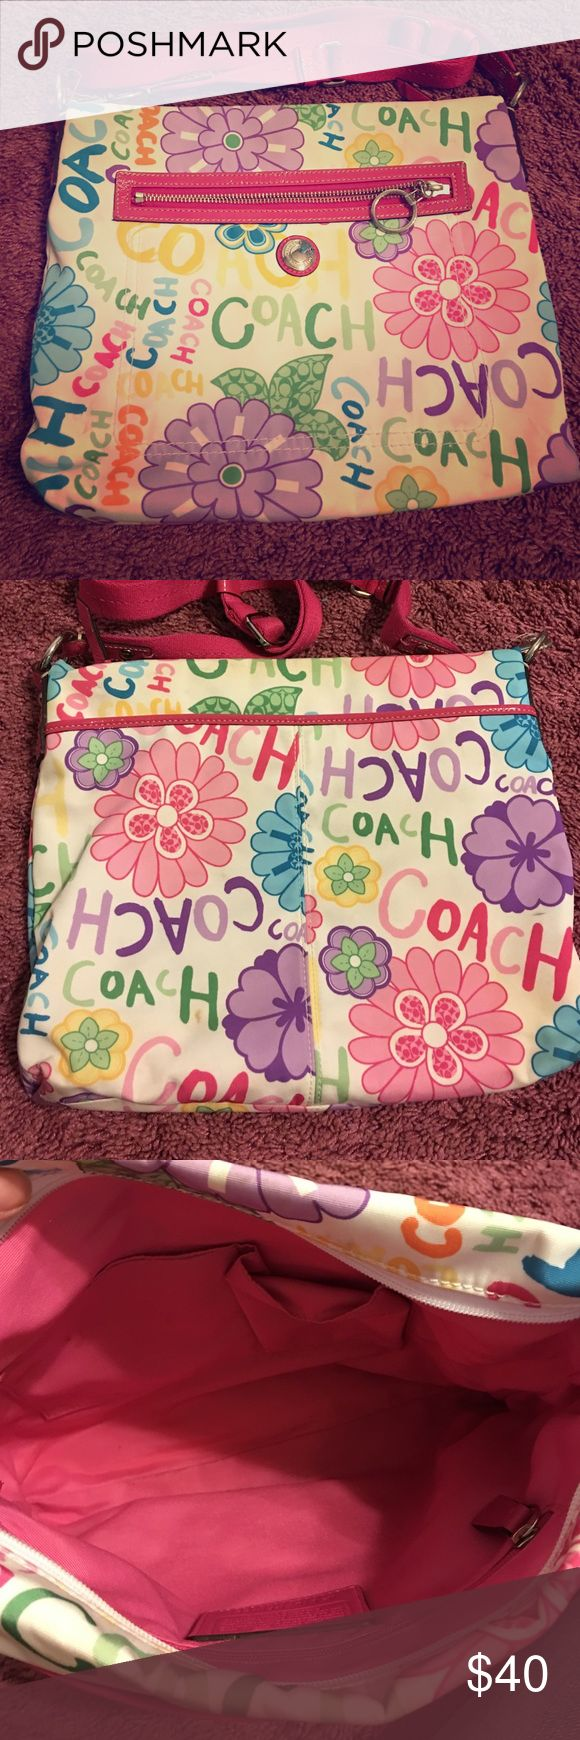 Coach Poppy Floral Shoulder Bag adorable bright pattern; some slight signs of use but still super cute! lined with pink fabric Coach Bags Shoulder Bags